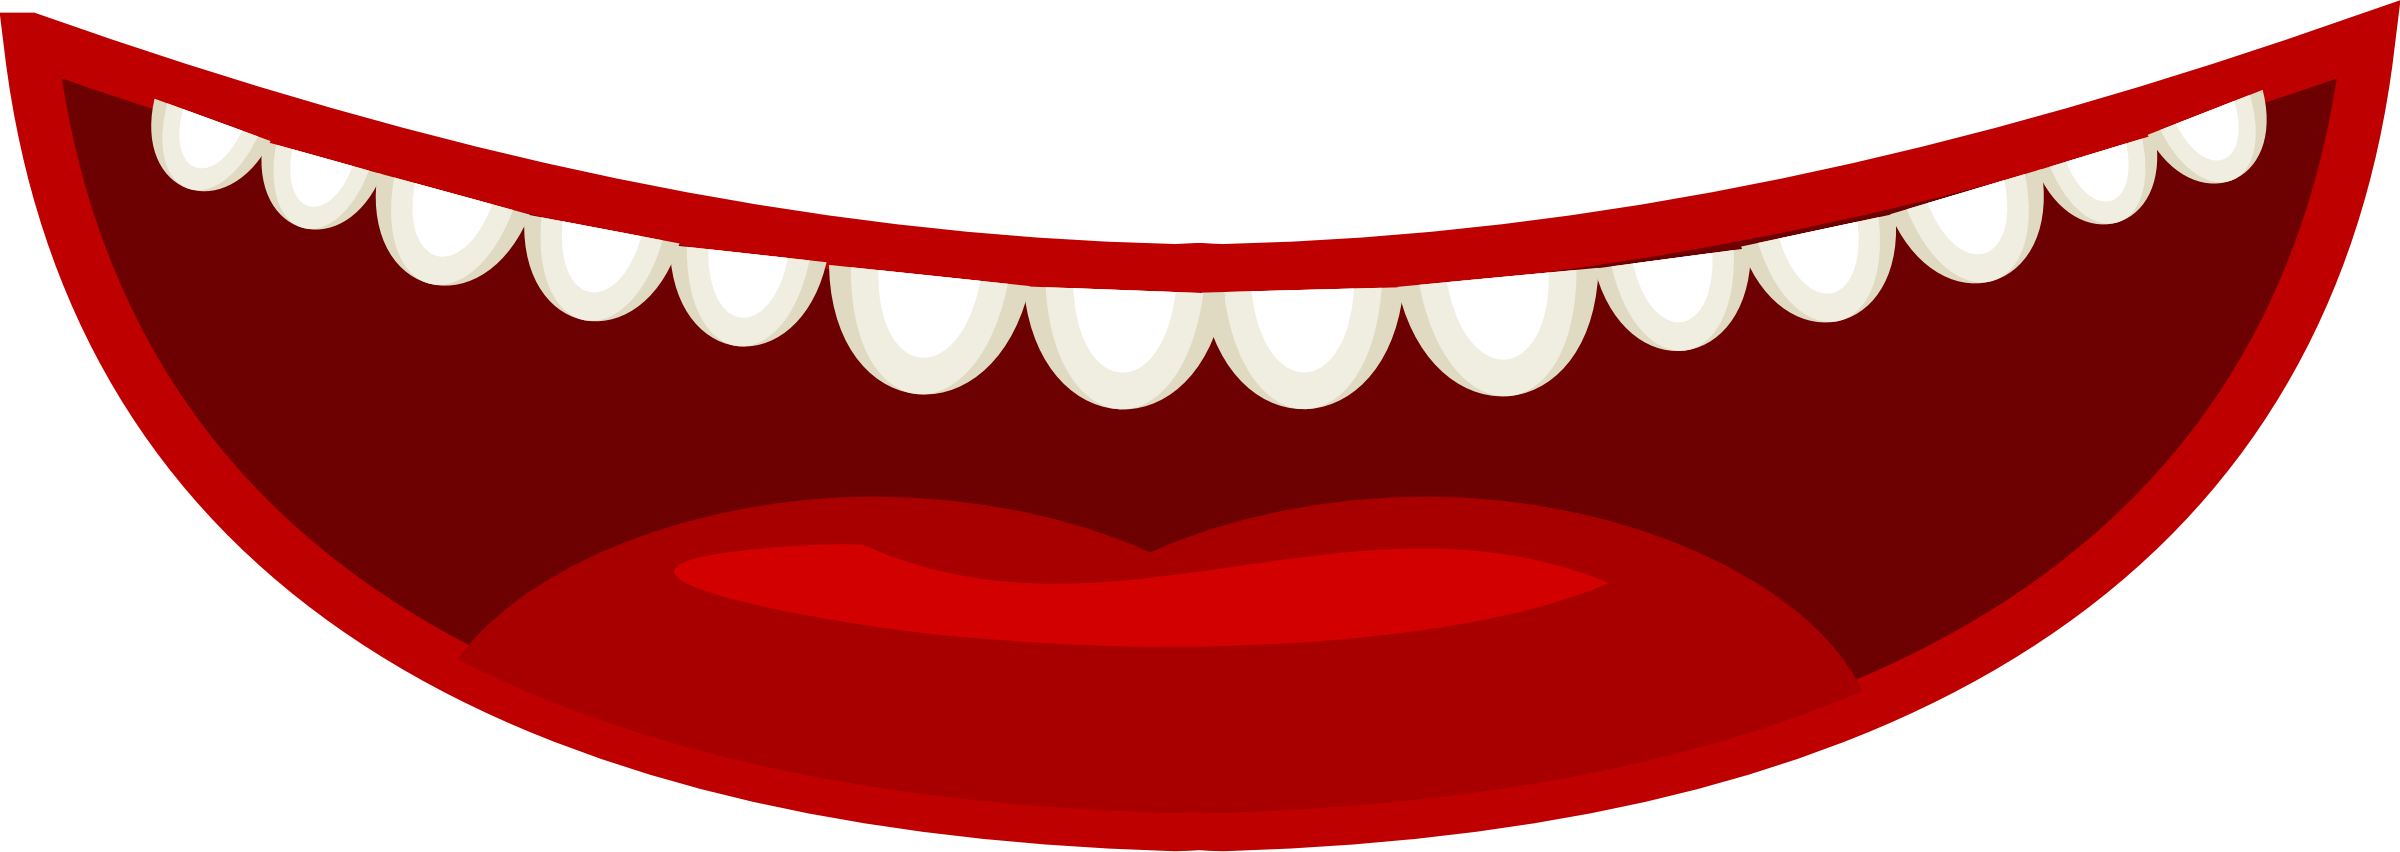 Clip art Portable Network Graphics Human mouth Transparency.